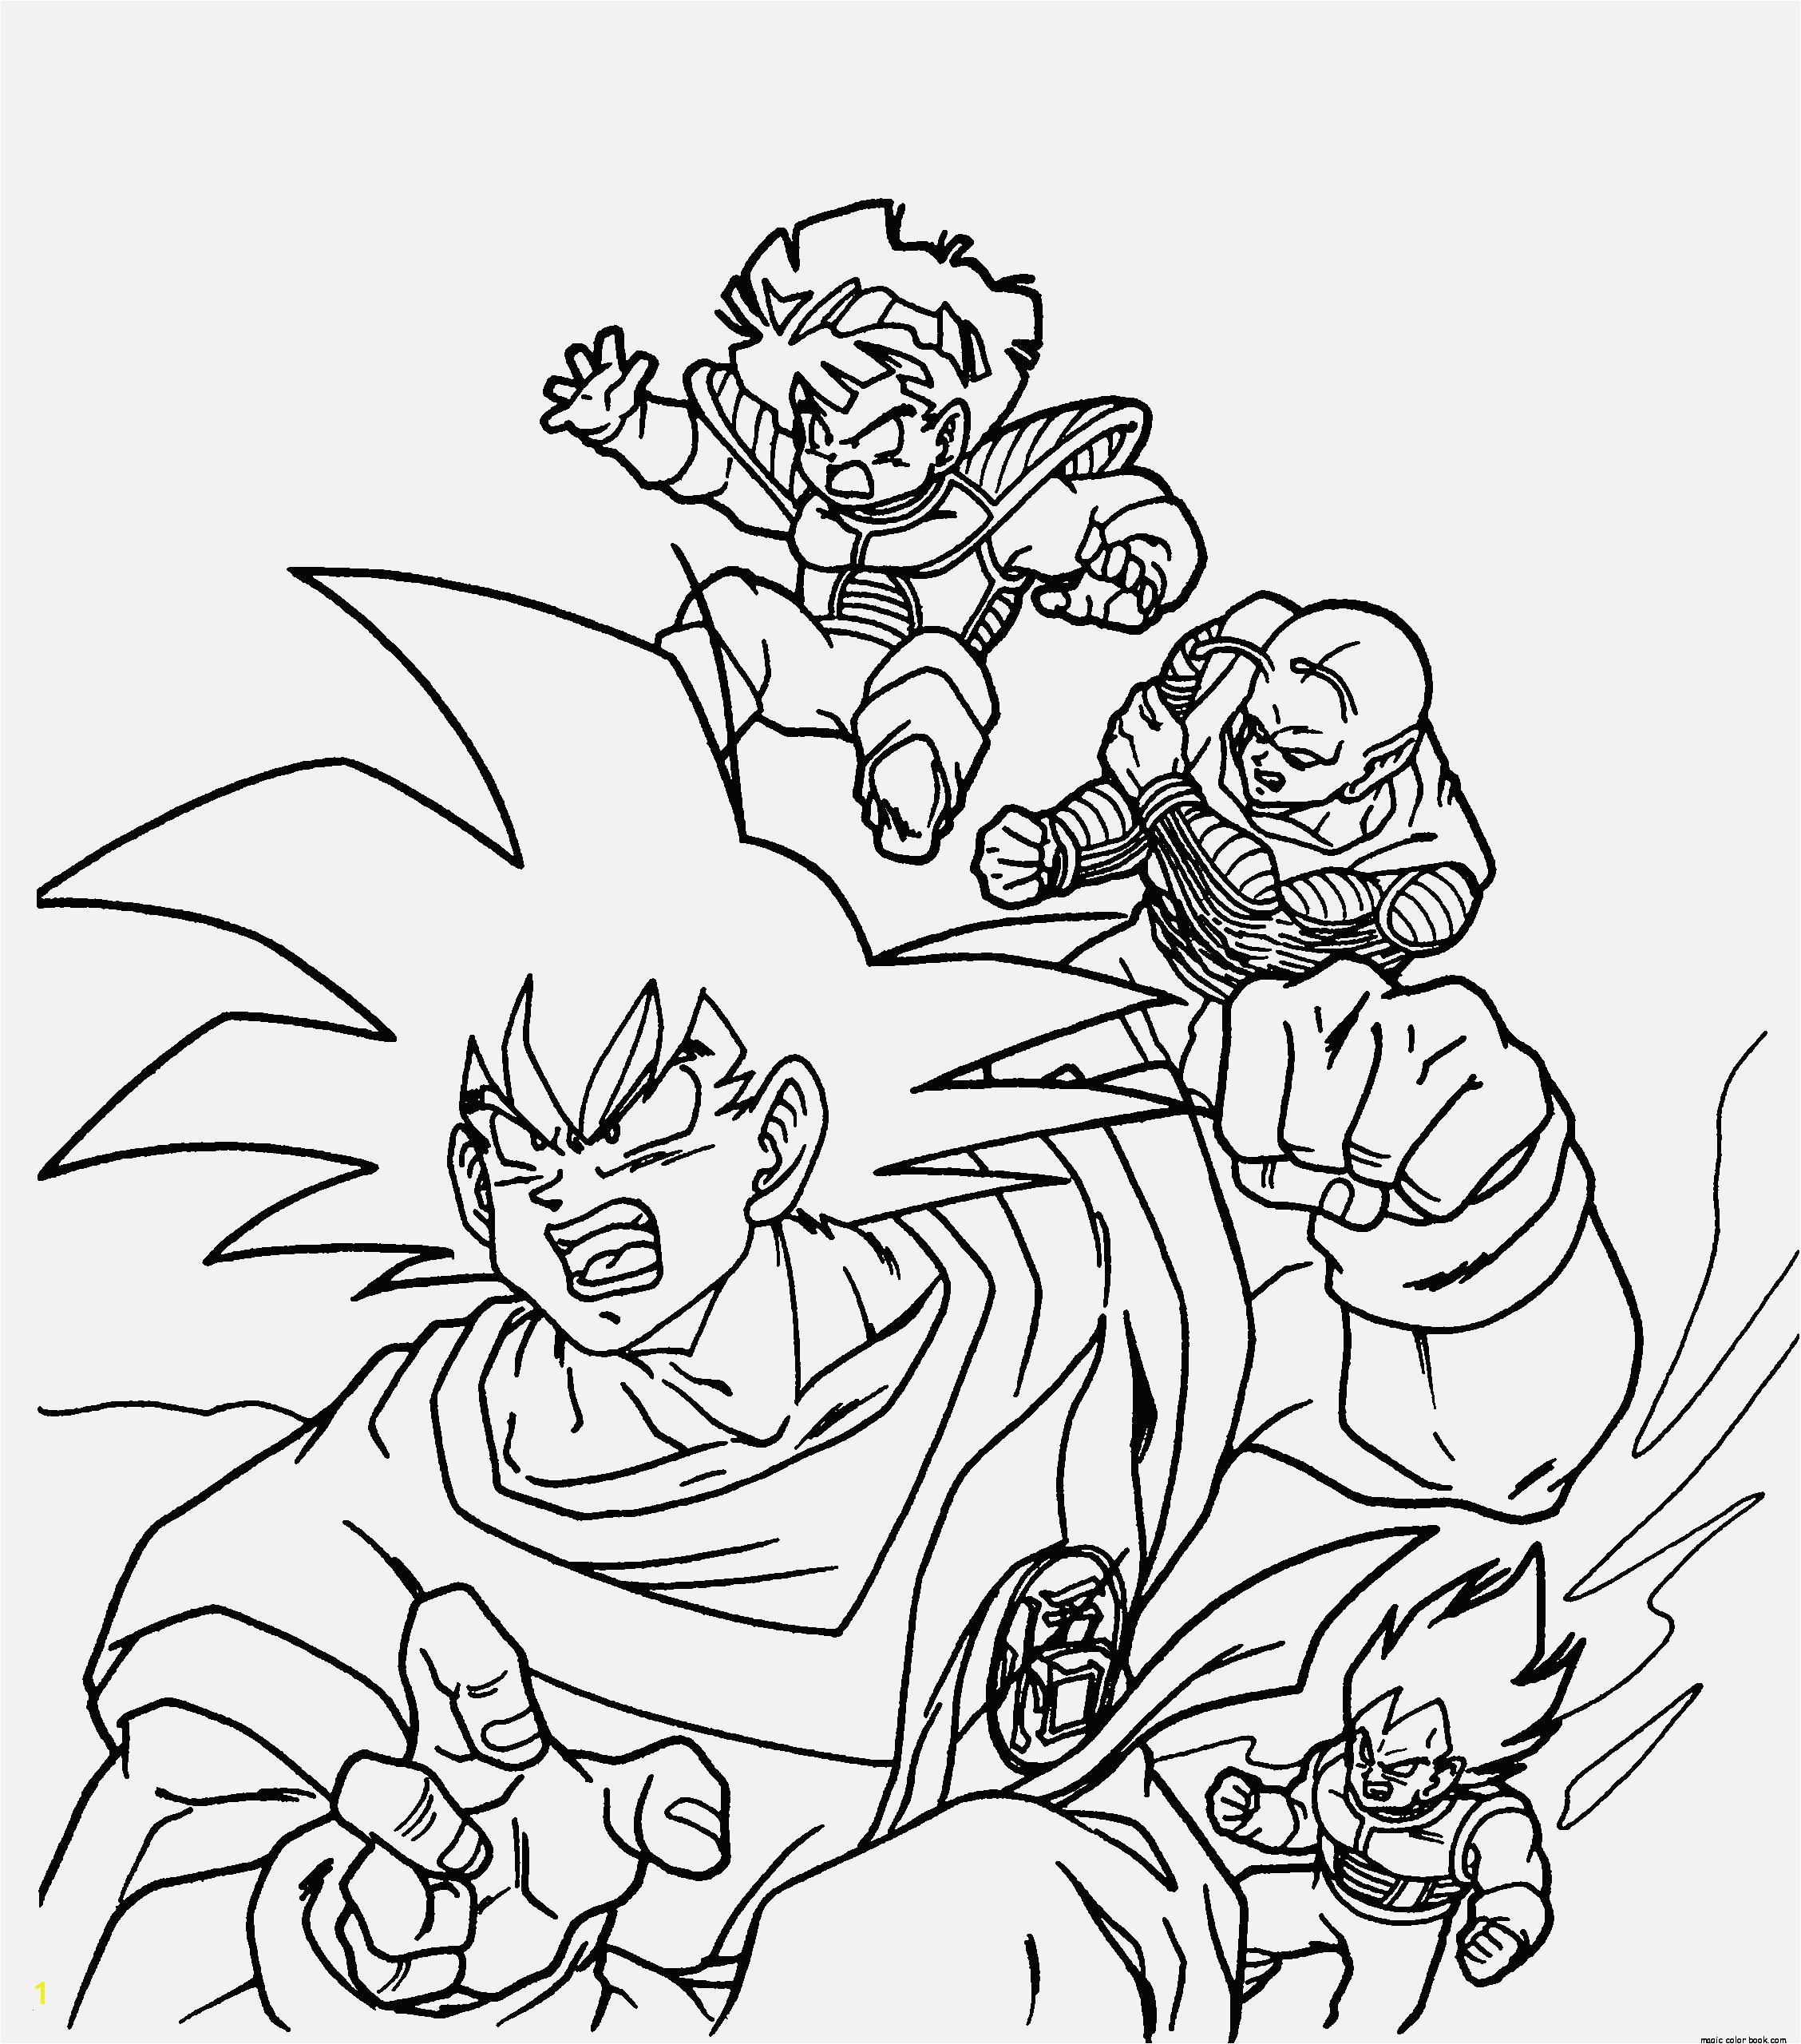 Dragon Ball Z Black and White Coloring Pages Dragons Ausmalbilder Eine Sammlung Von Färbung Bilder Dragon Ball Z